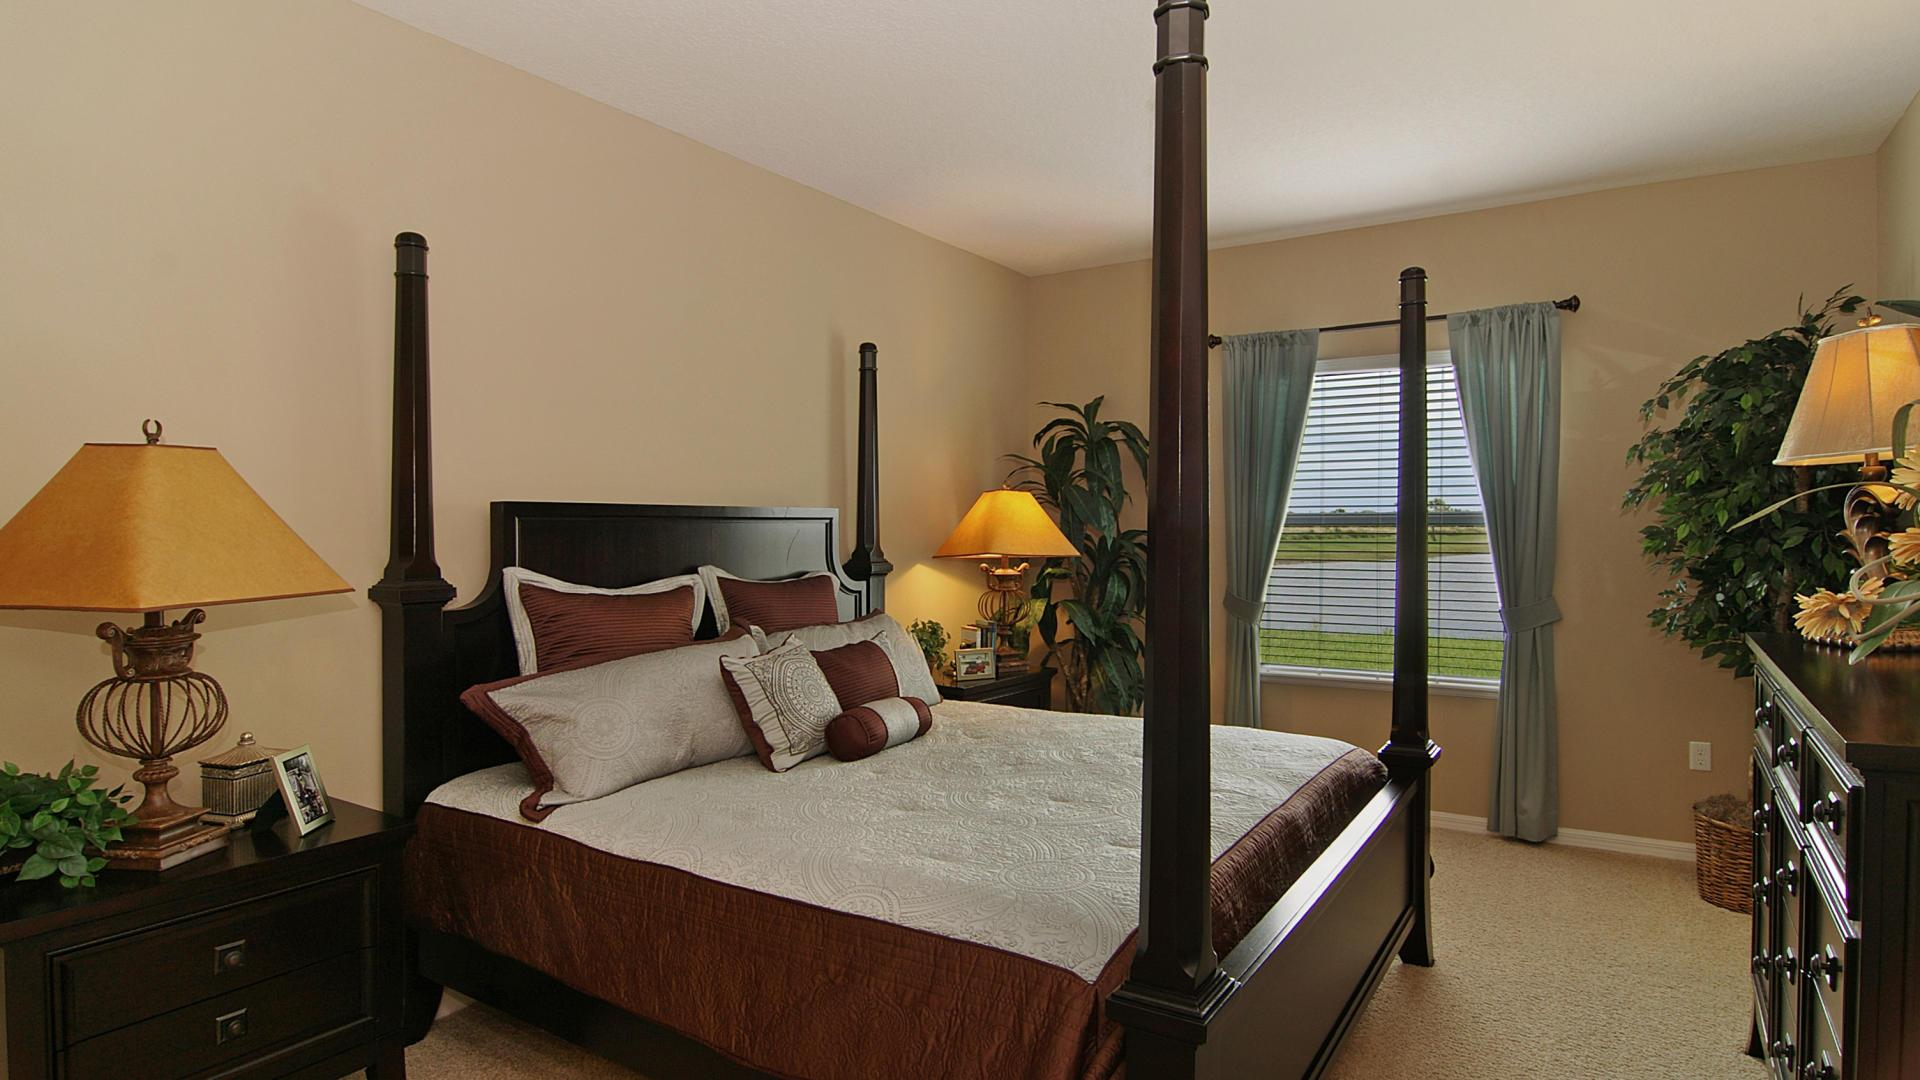 Bedroom featured in the Avella By Maronda Homes in Daytona Beach, FL